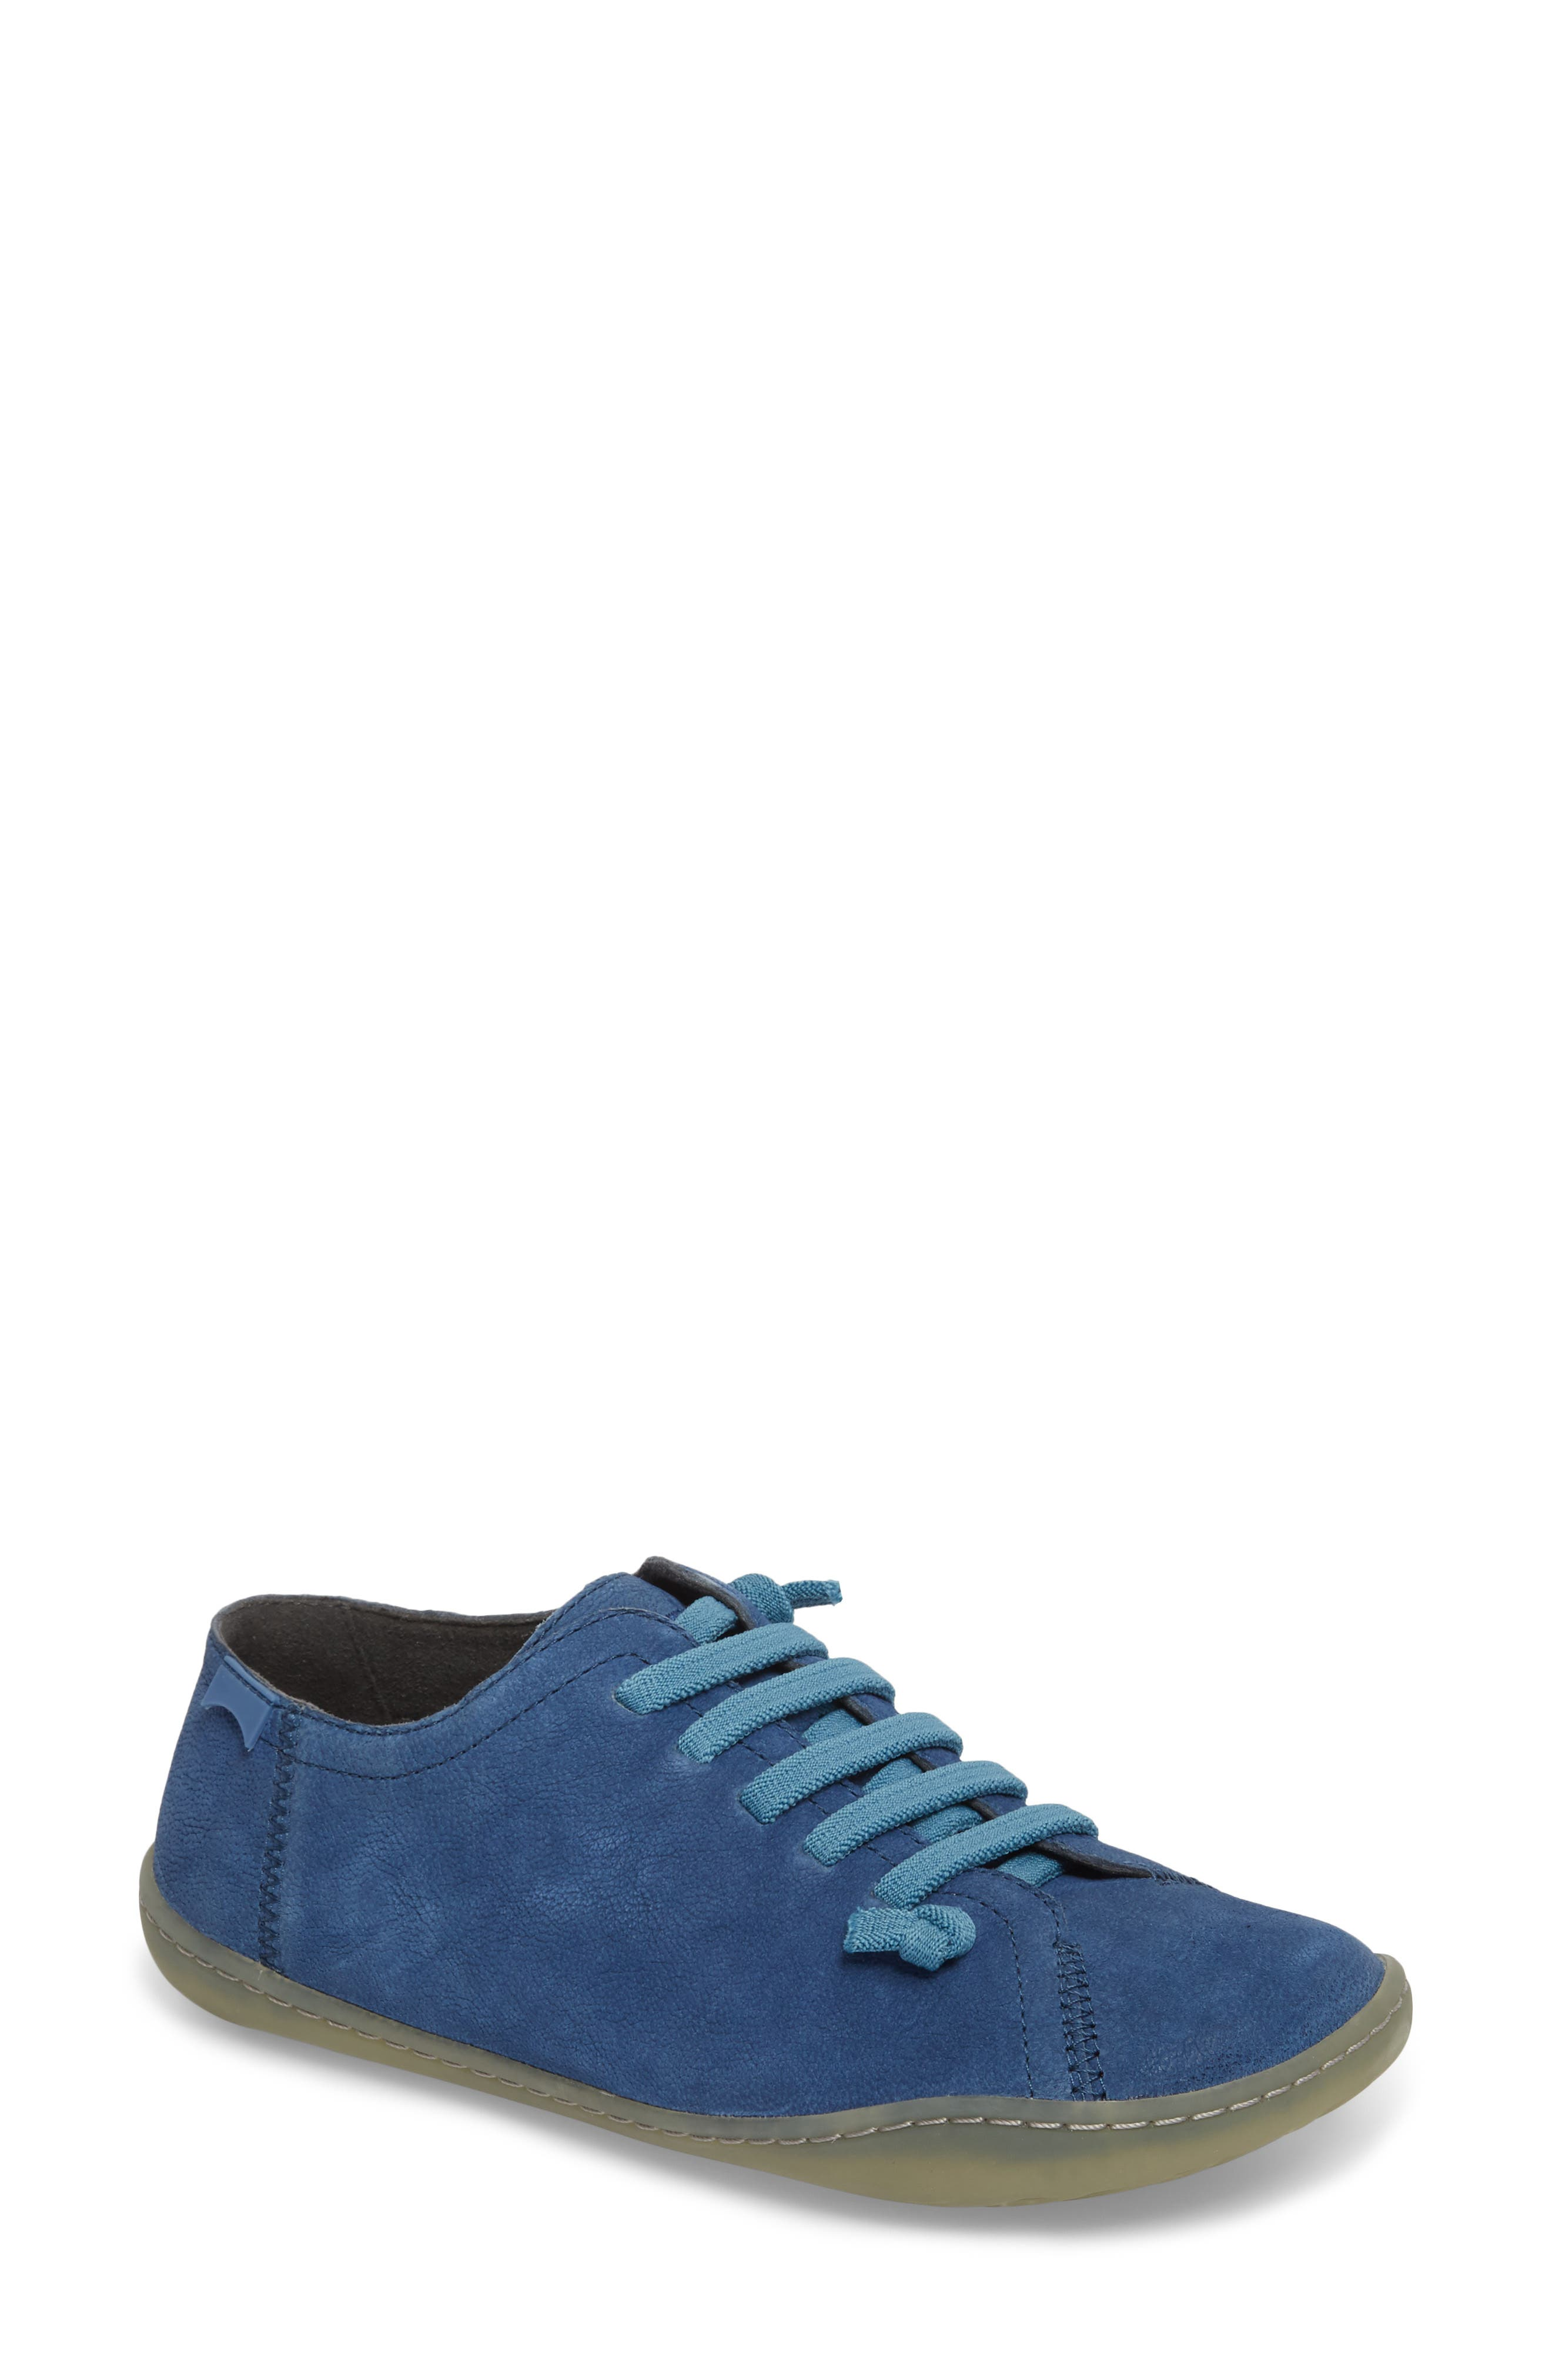 'Peu Cami' Leather Sneaker,                         Main,                         color, 420